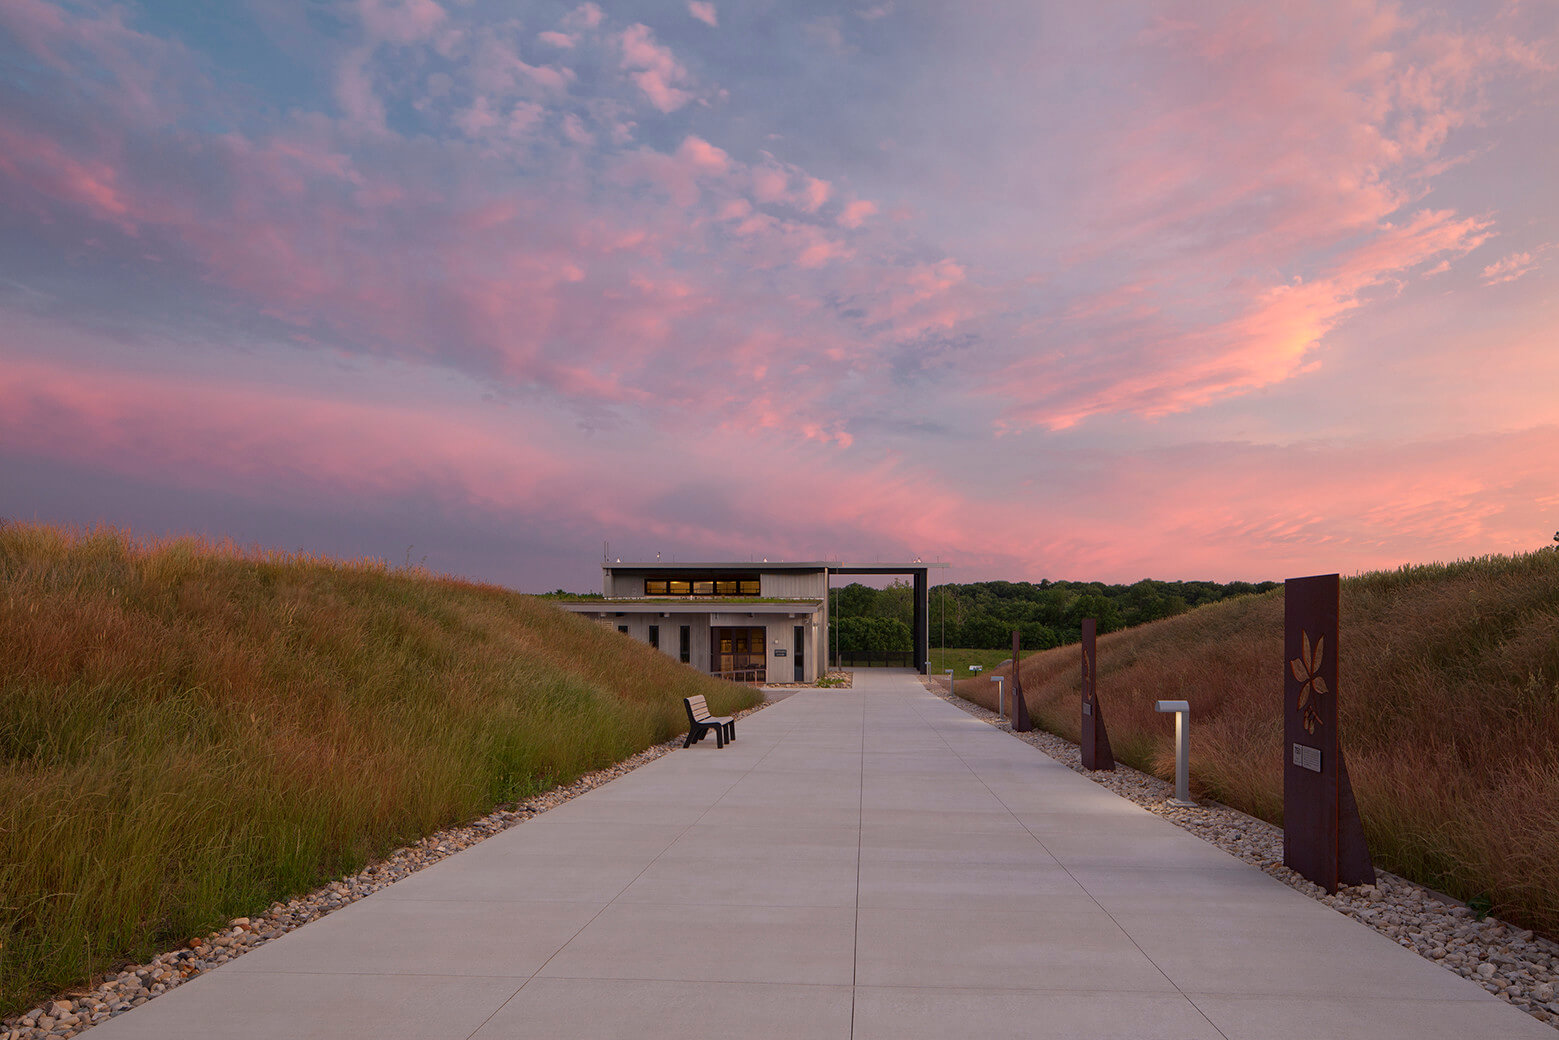 A paved path leads towards a modern building. The path is lined by small grassy hills. The sun is setting, leaving the sky and clouds a faint pink color.